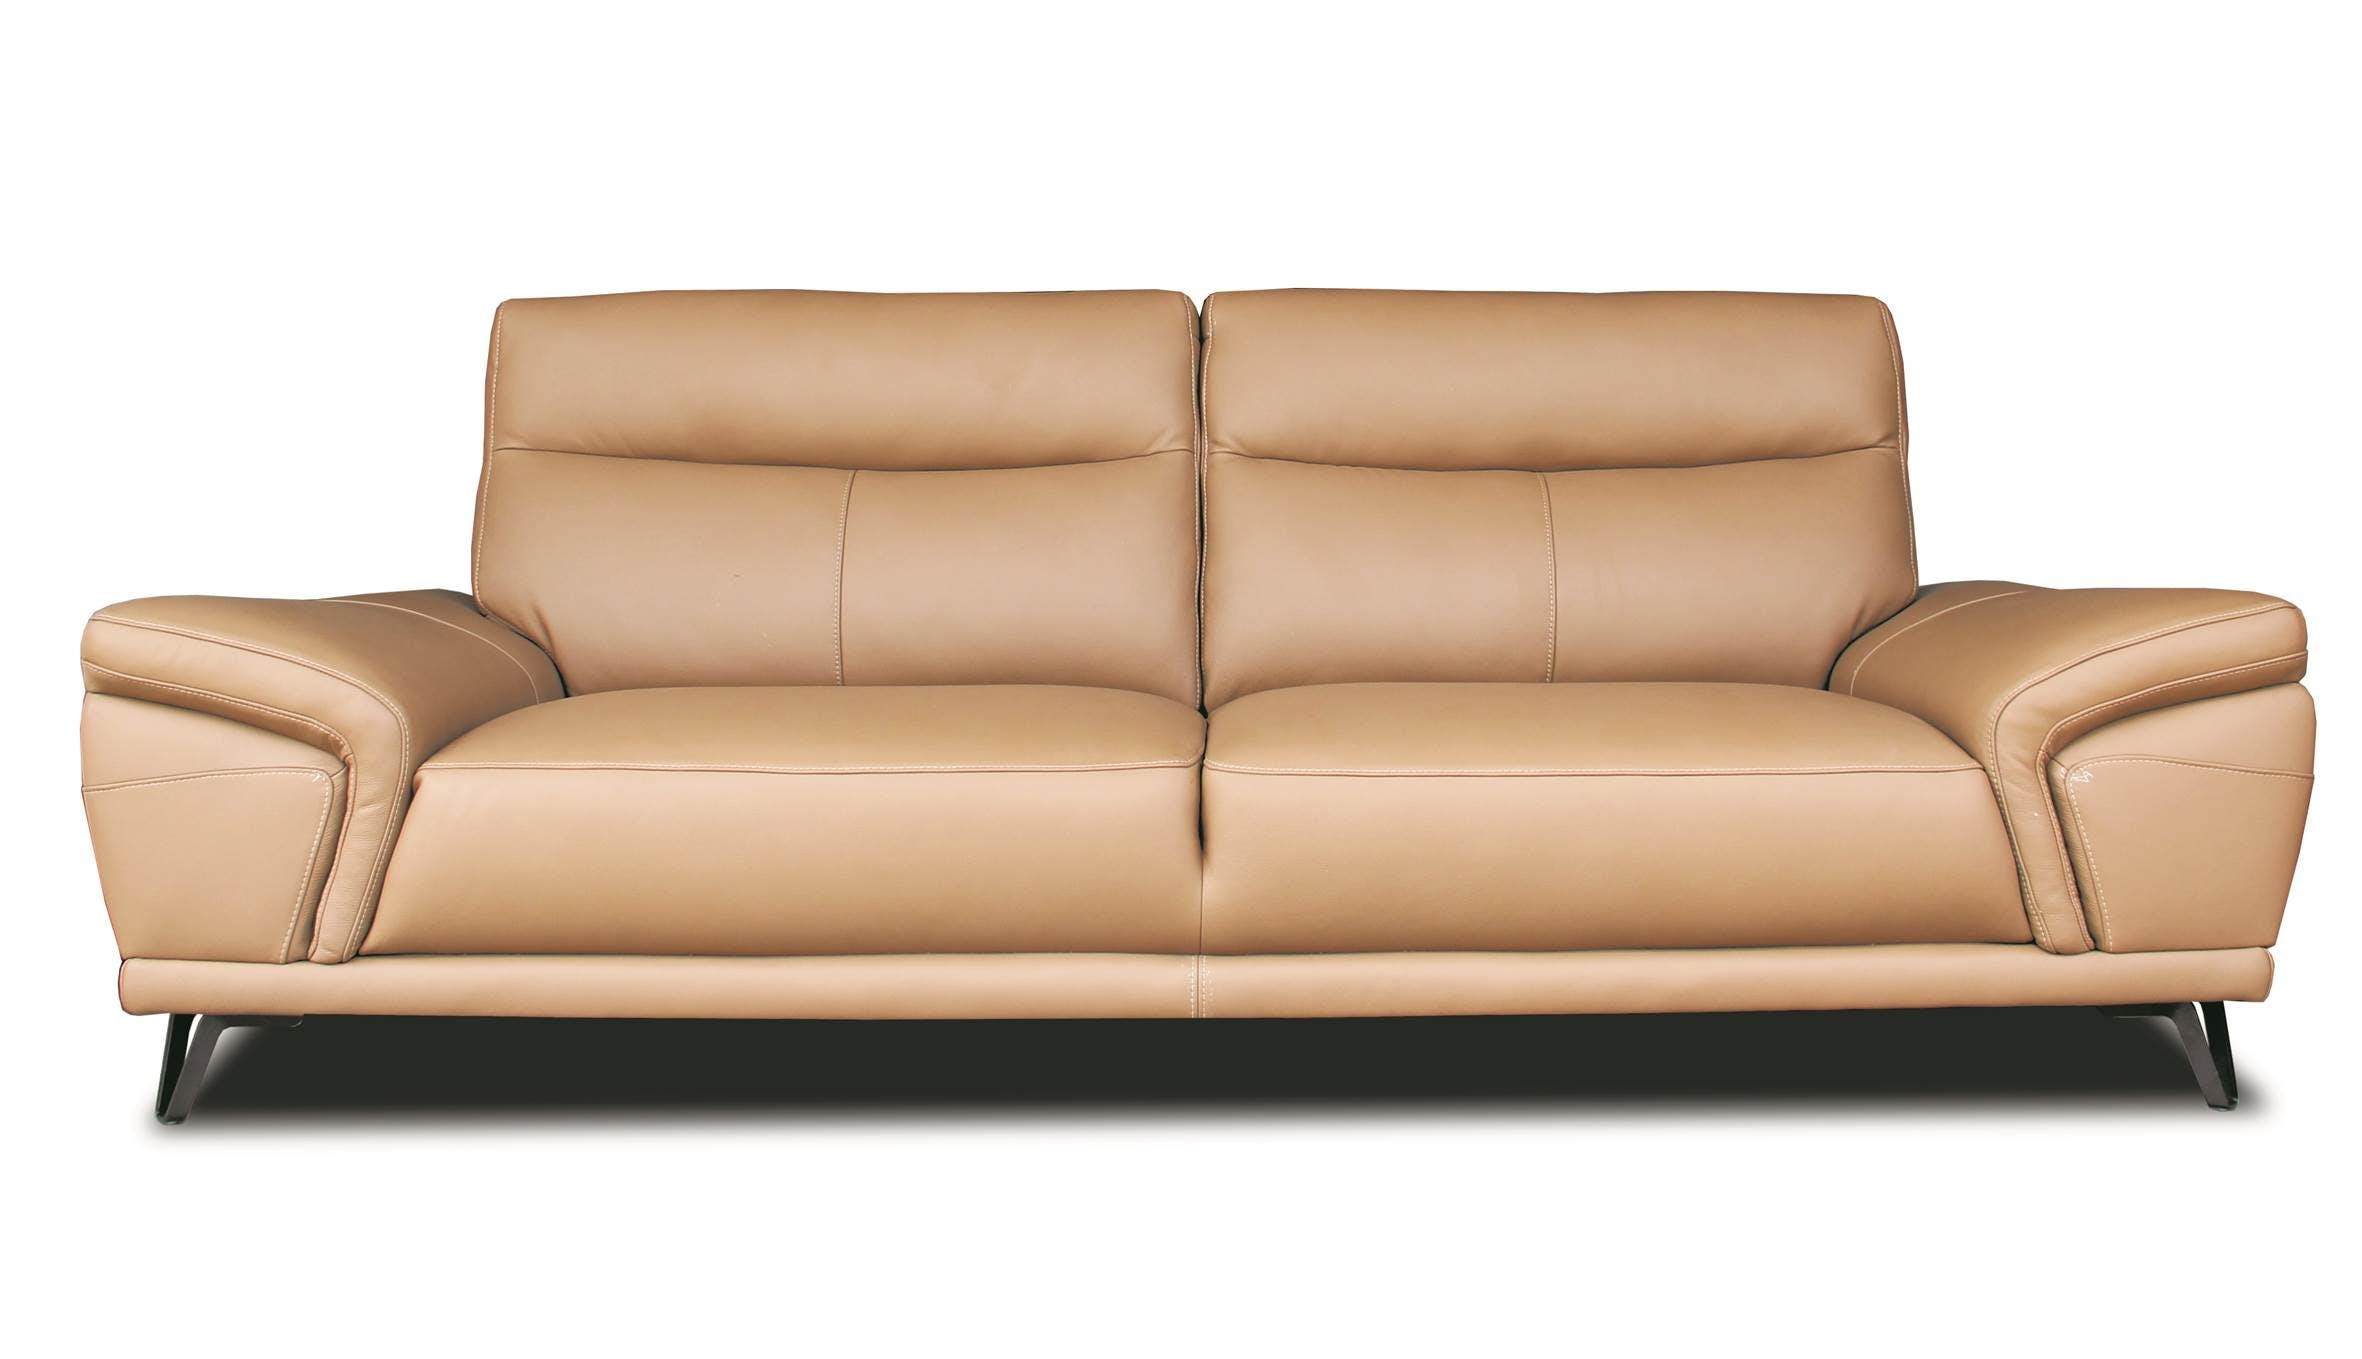 Hilker kingdom 3 seater leather sofa harvey norman singapore for Sofa 7 seater